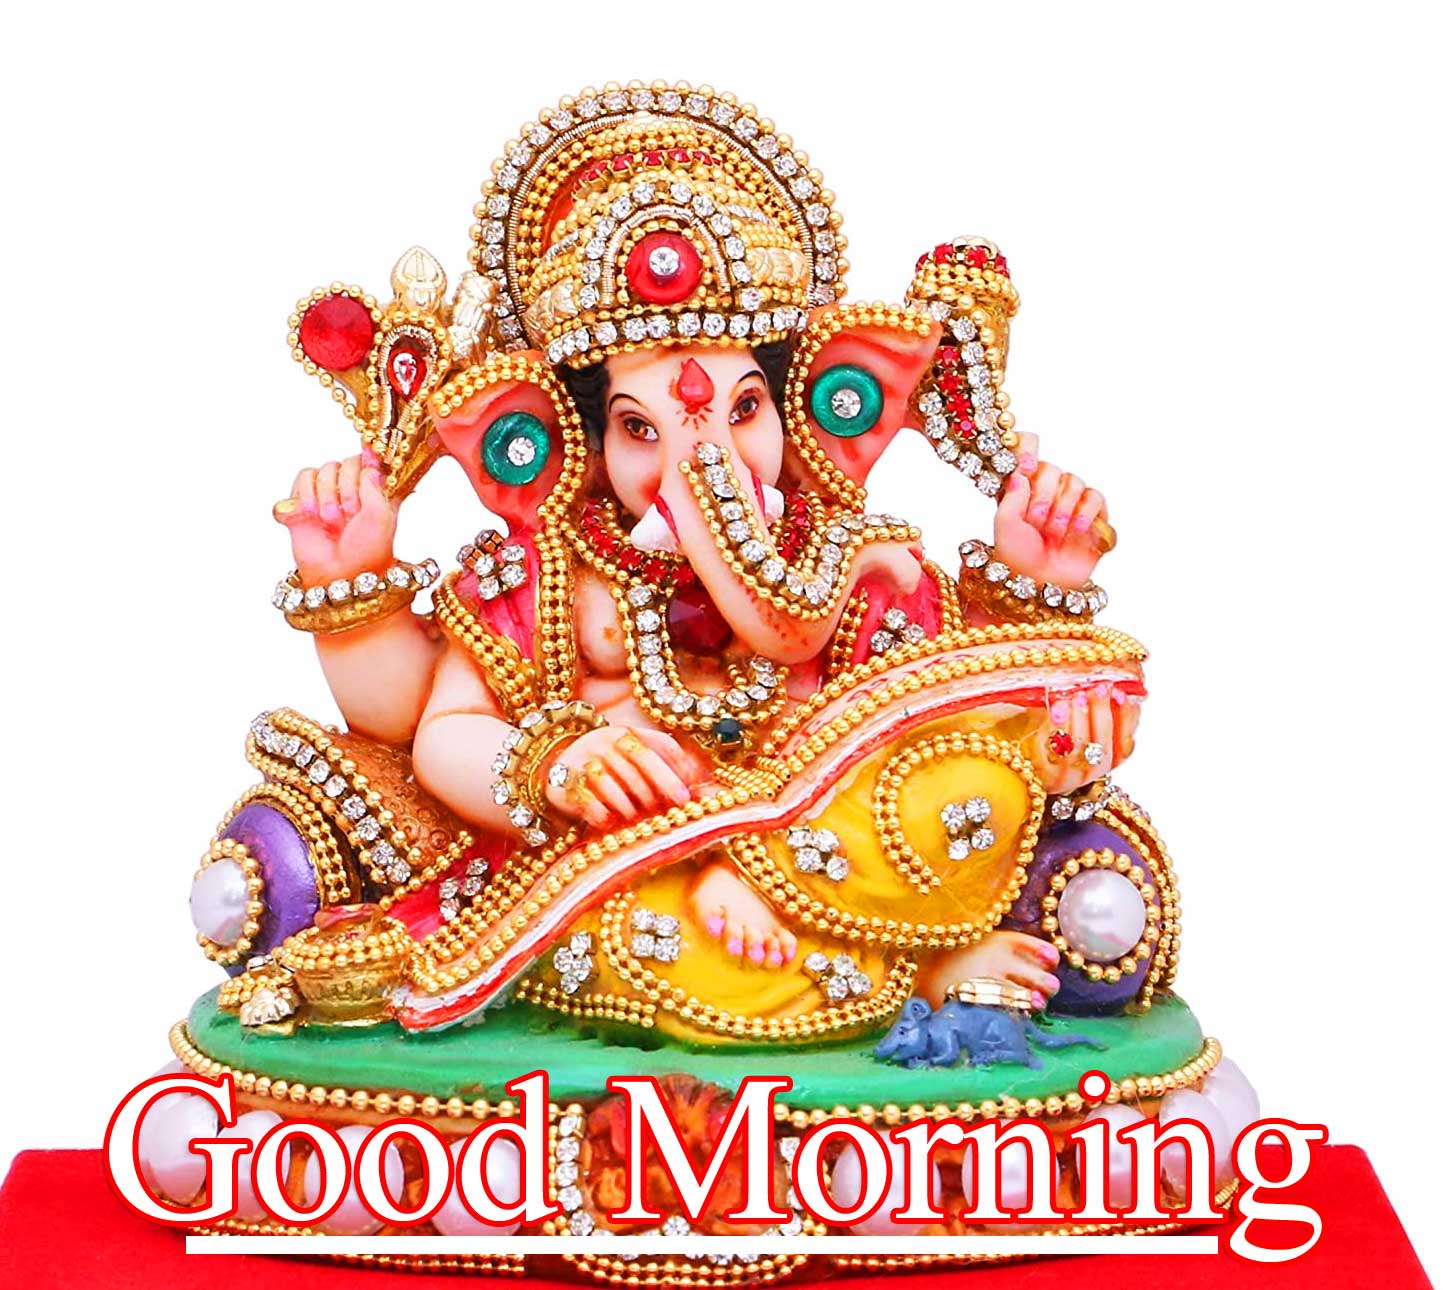 Latest Updated Good Morning Ganpati Bappa Wallpaper Pics Download